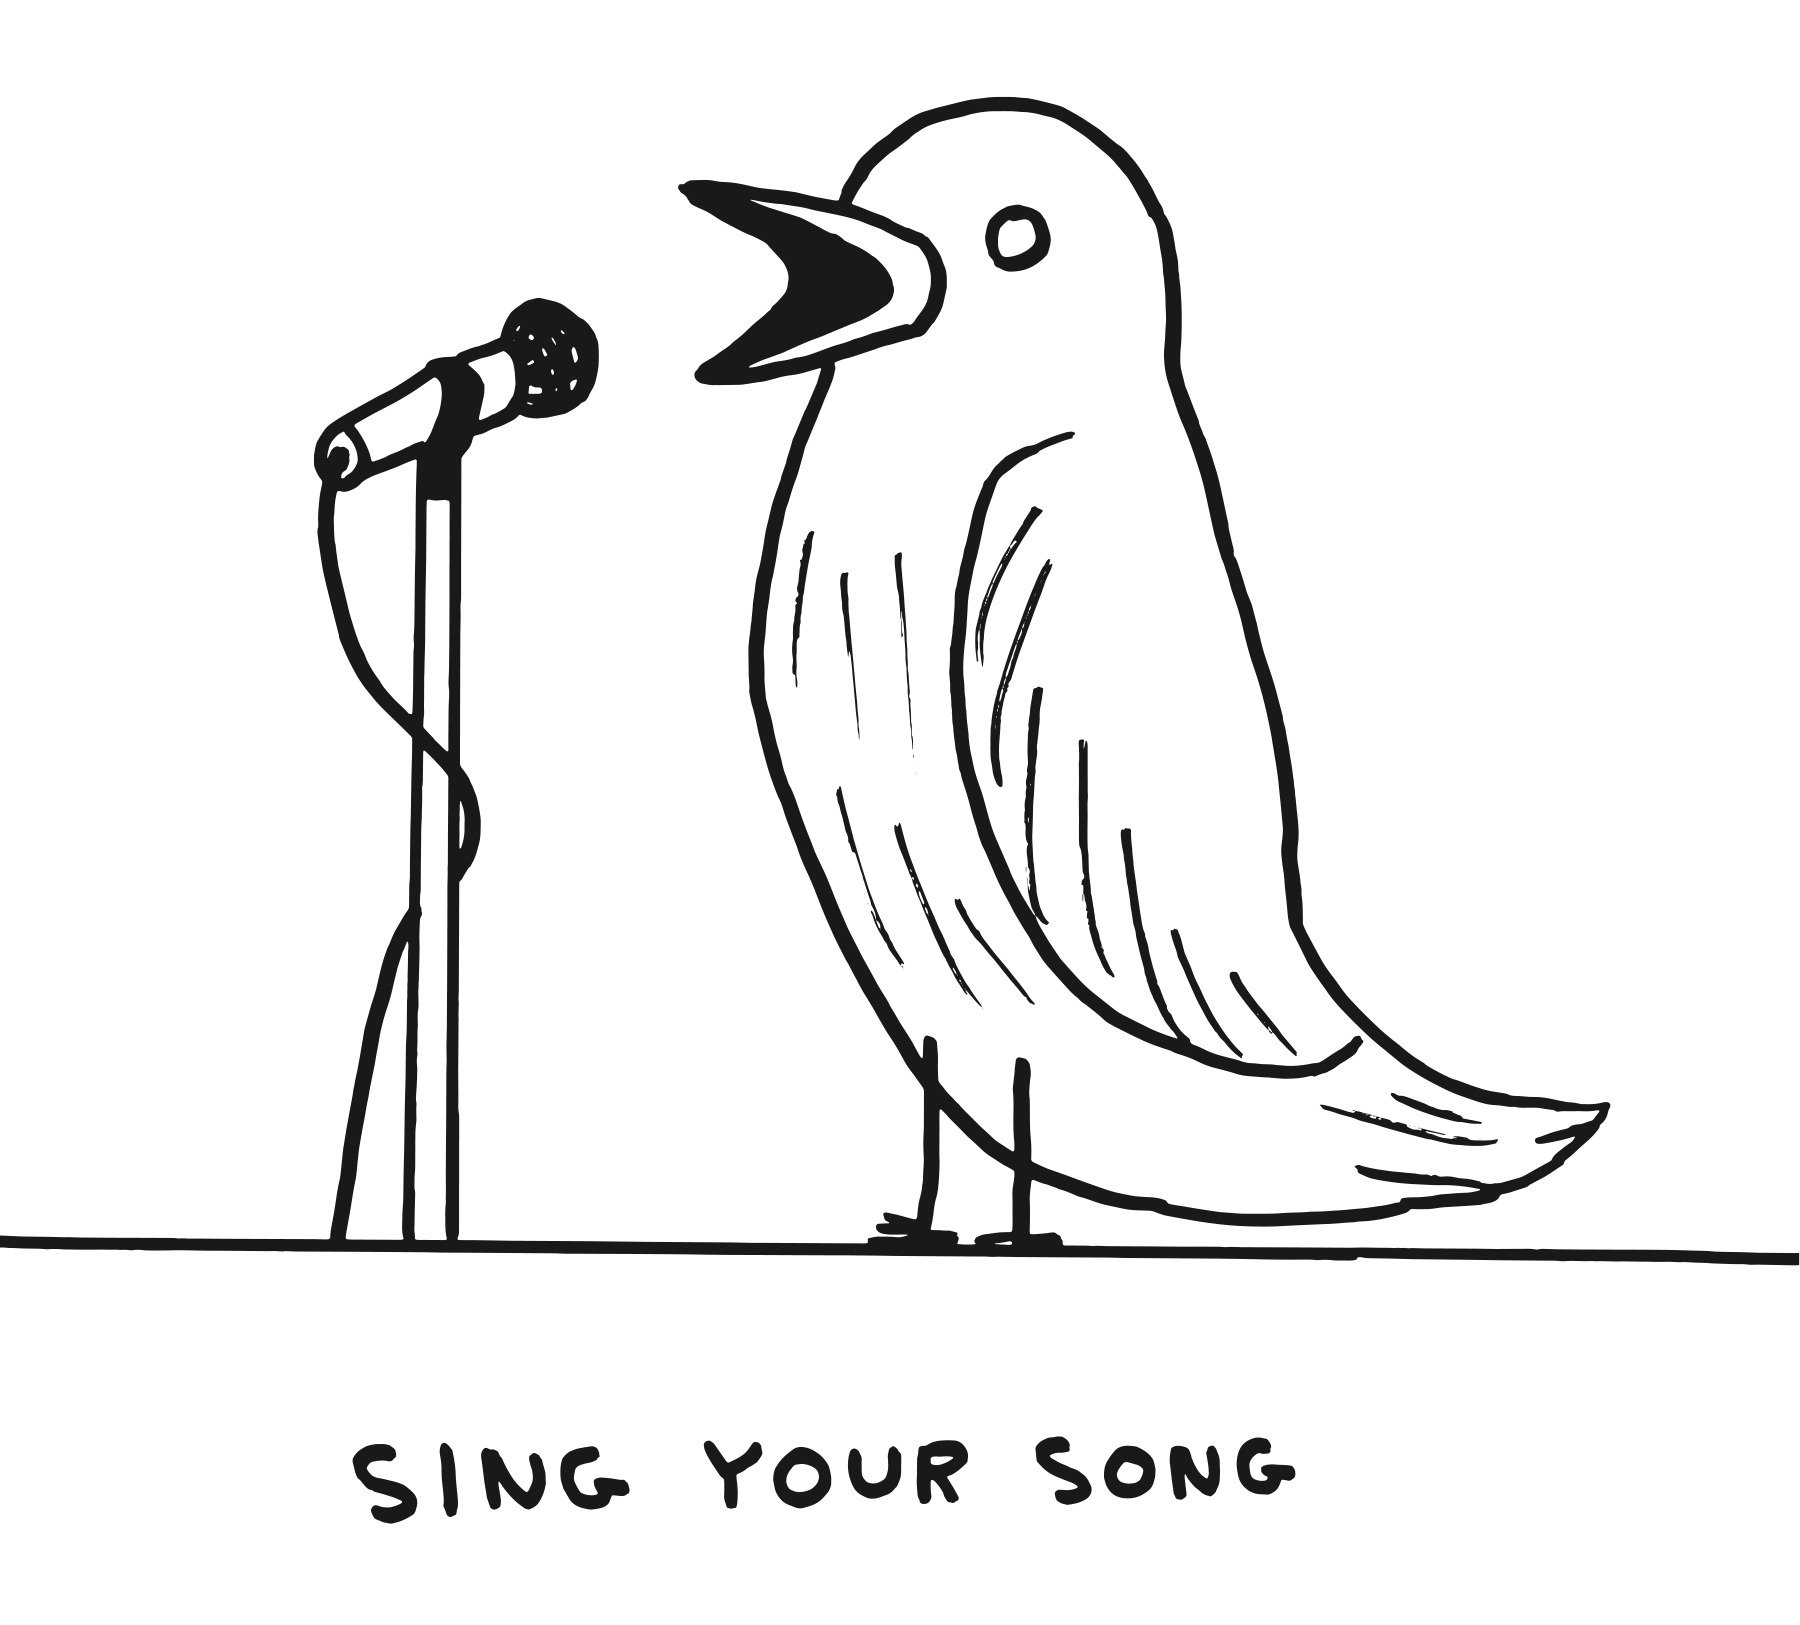 Sing your song 1